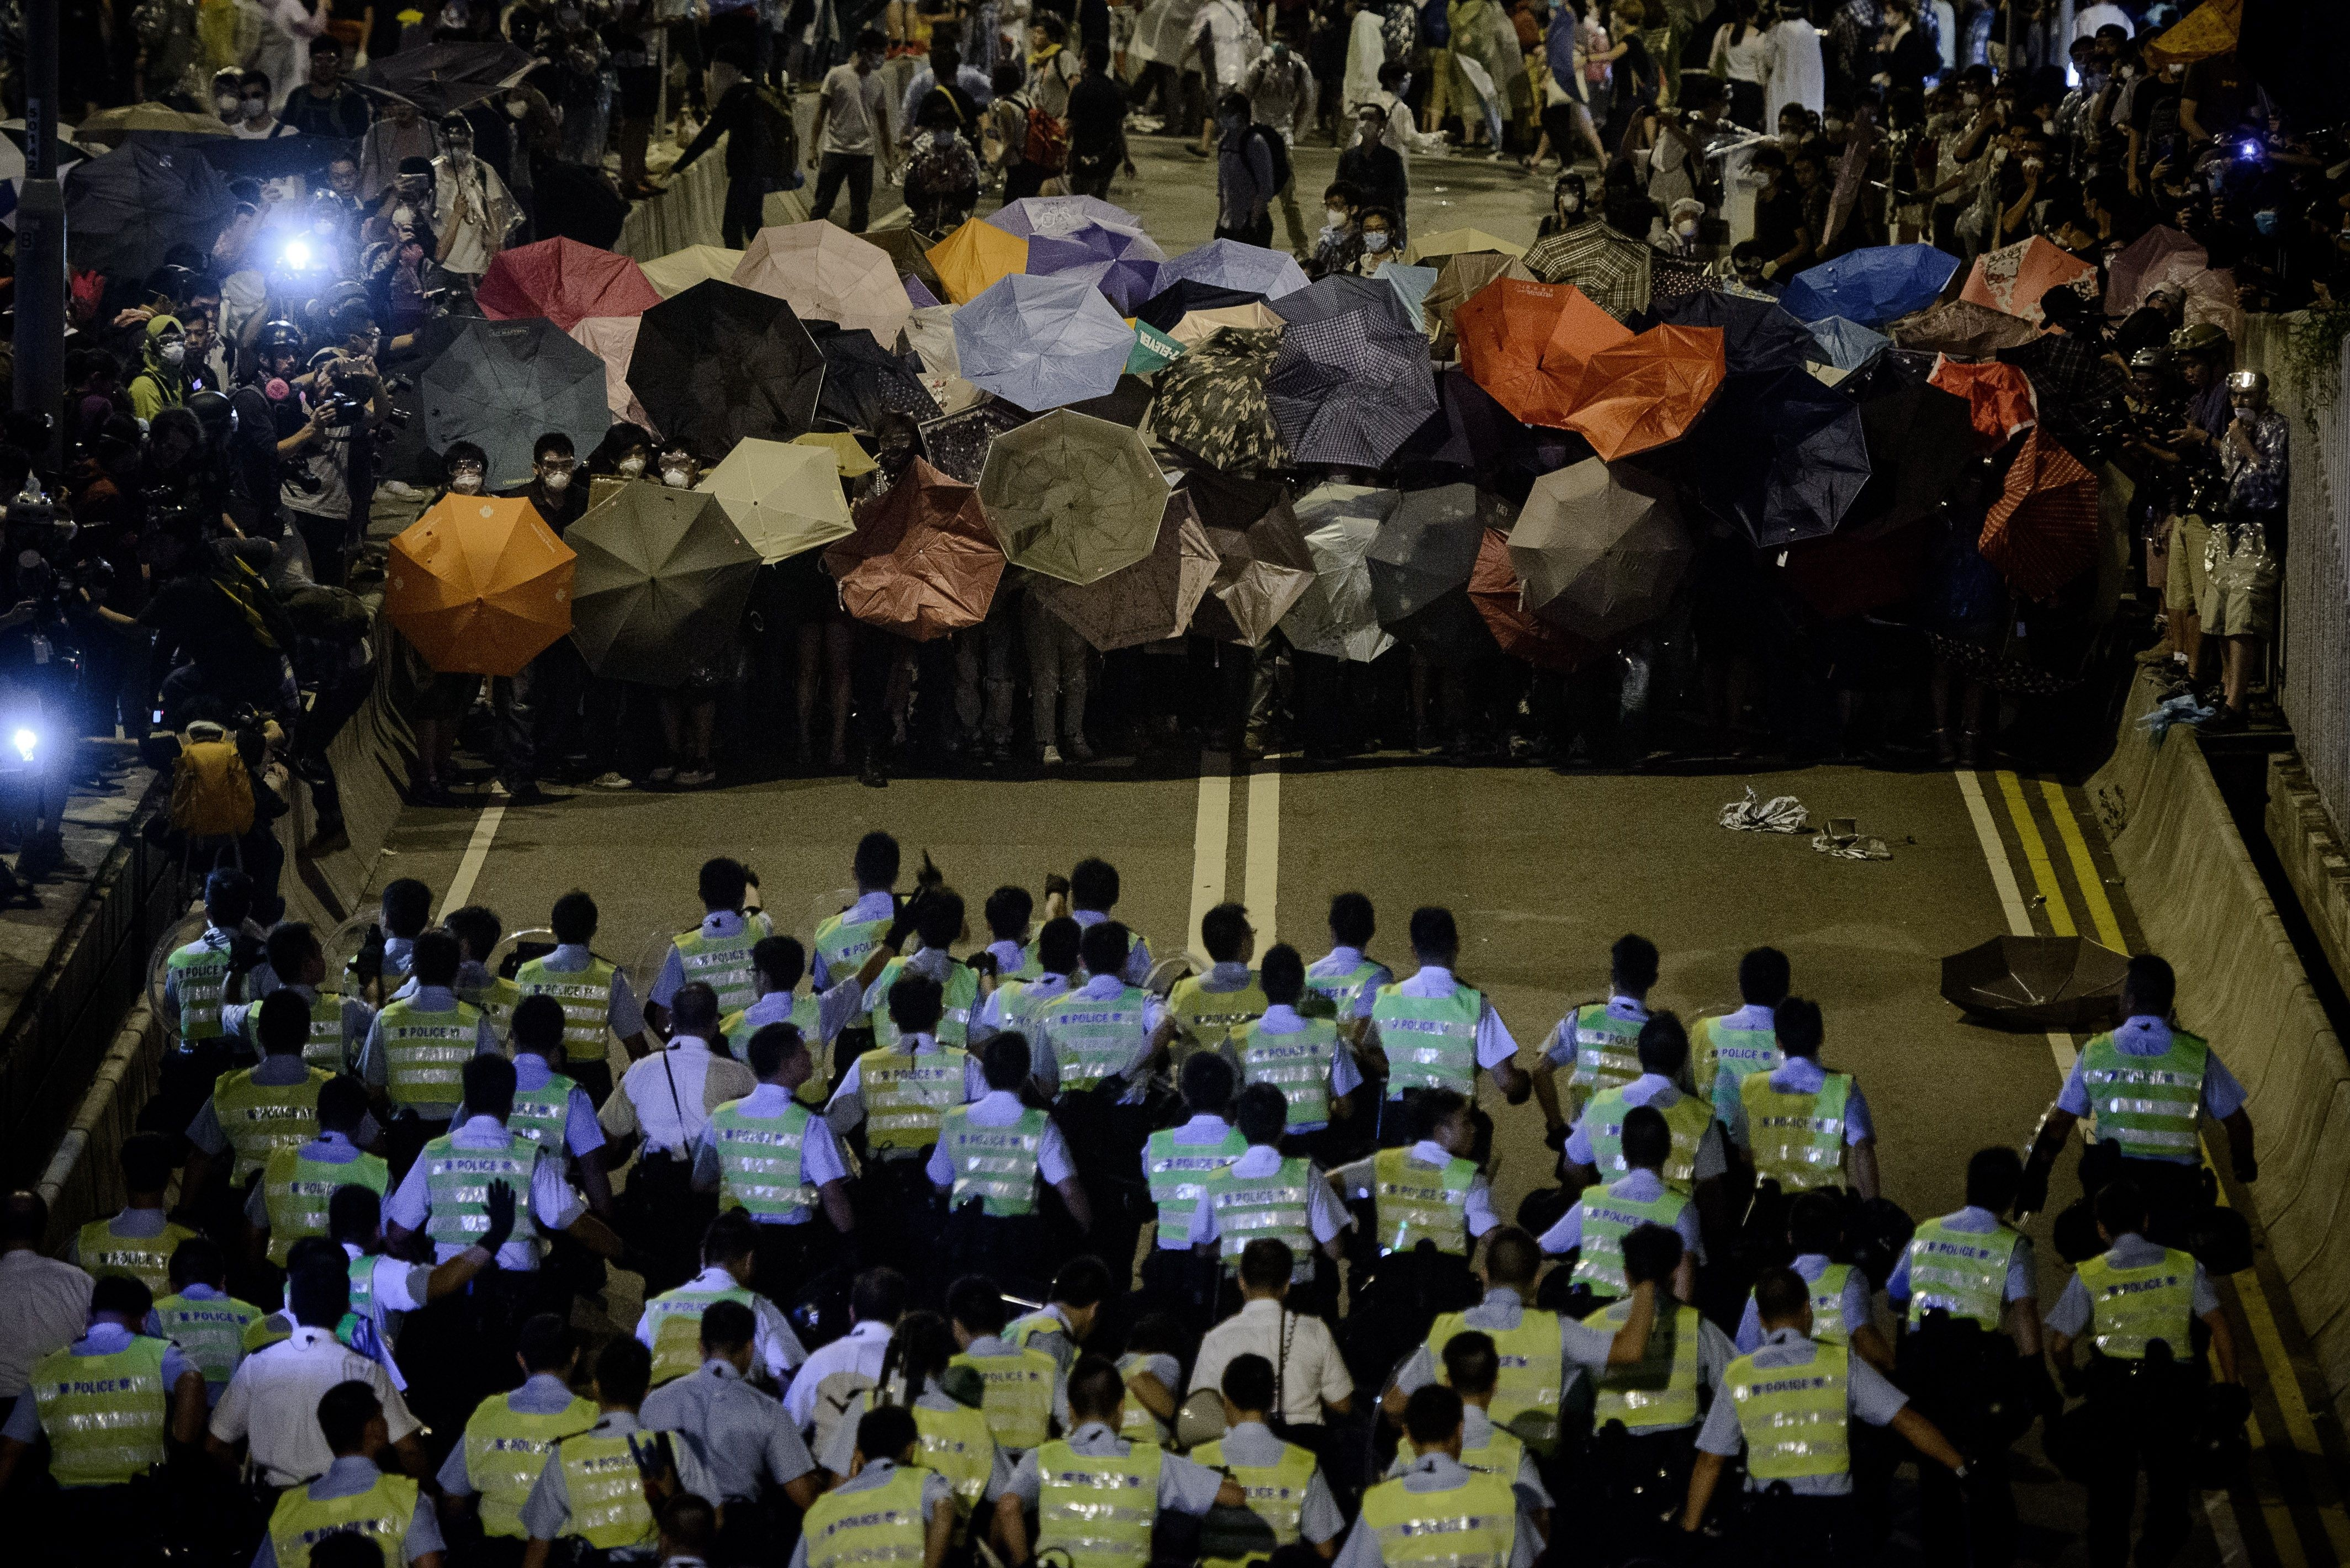 Hong Kong protesters dig in over election reforms